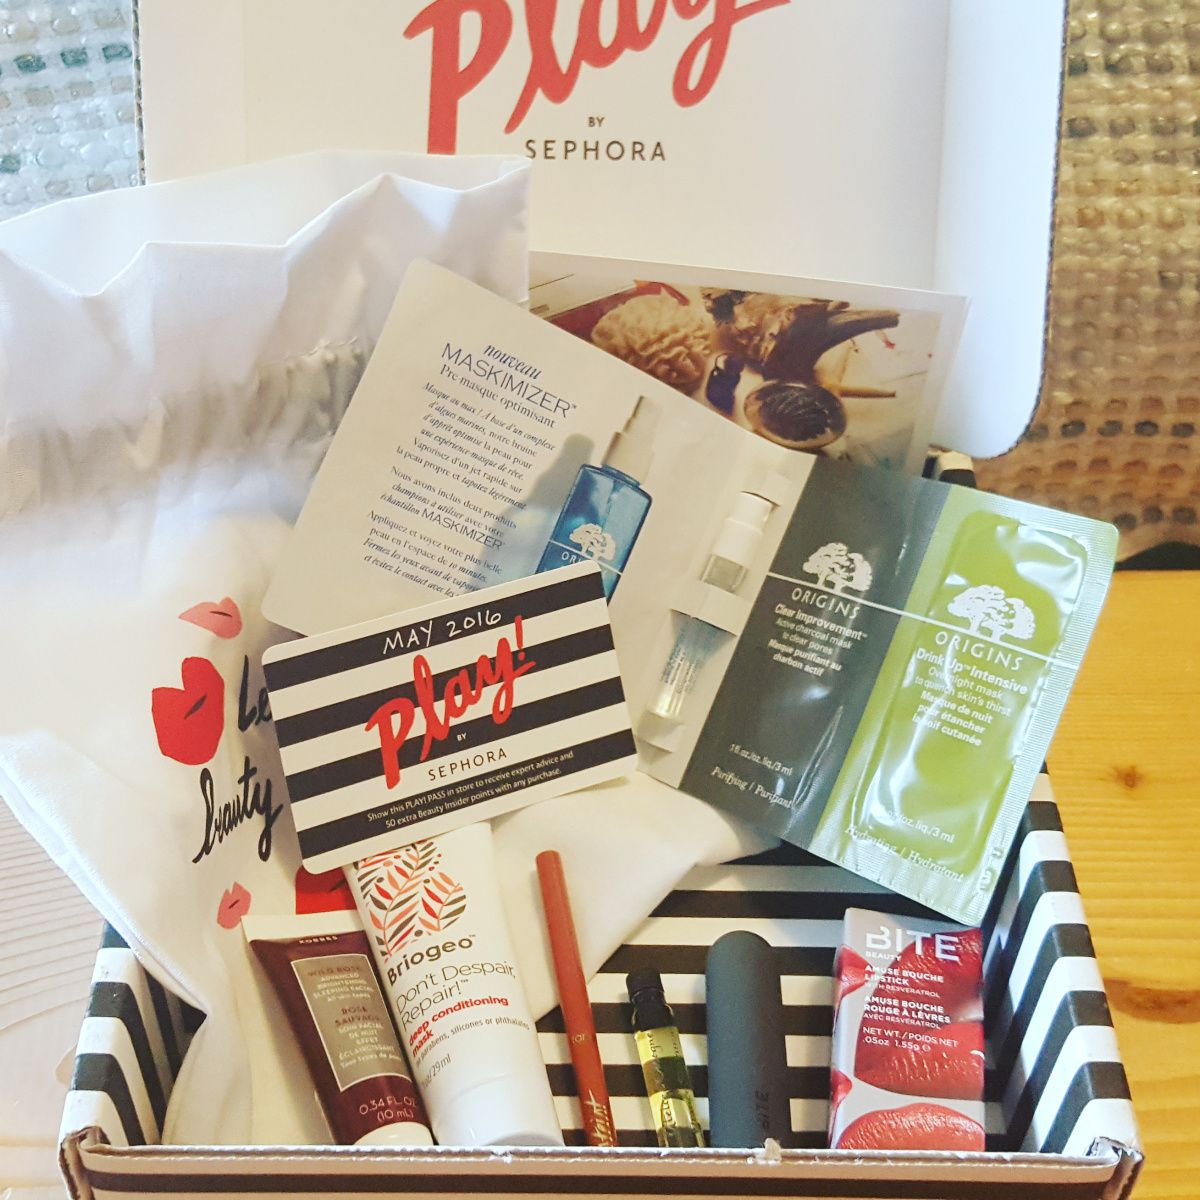 Yay!!! My first #PlayBySephora box I'm so excited to be off the #waitlist 😃May's box theme is The Force of Nature and features six products 💜Bite Beauty Amuse Bouche in Kim Kimchi Wow!…